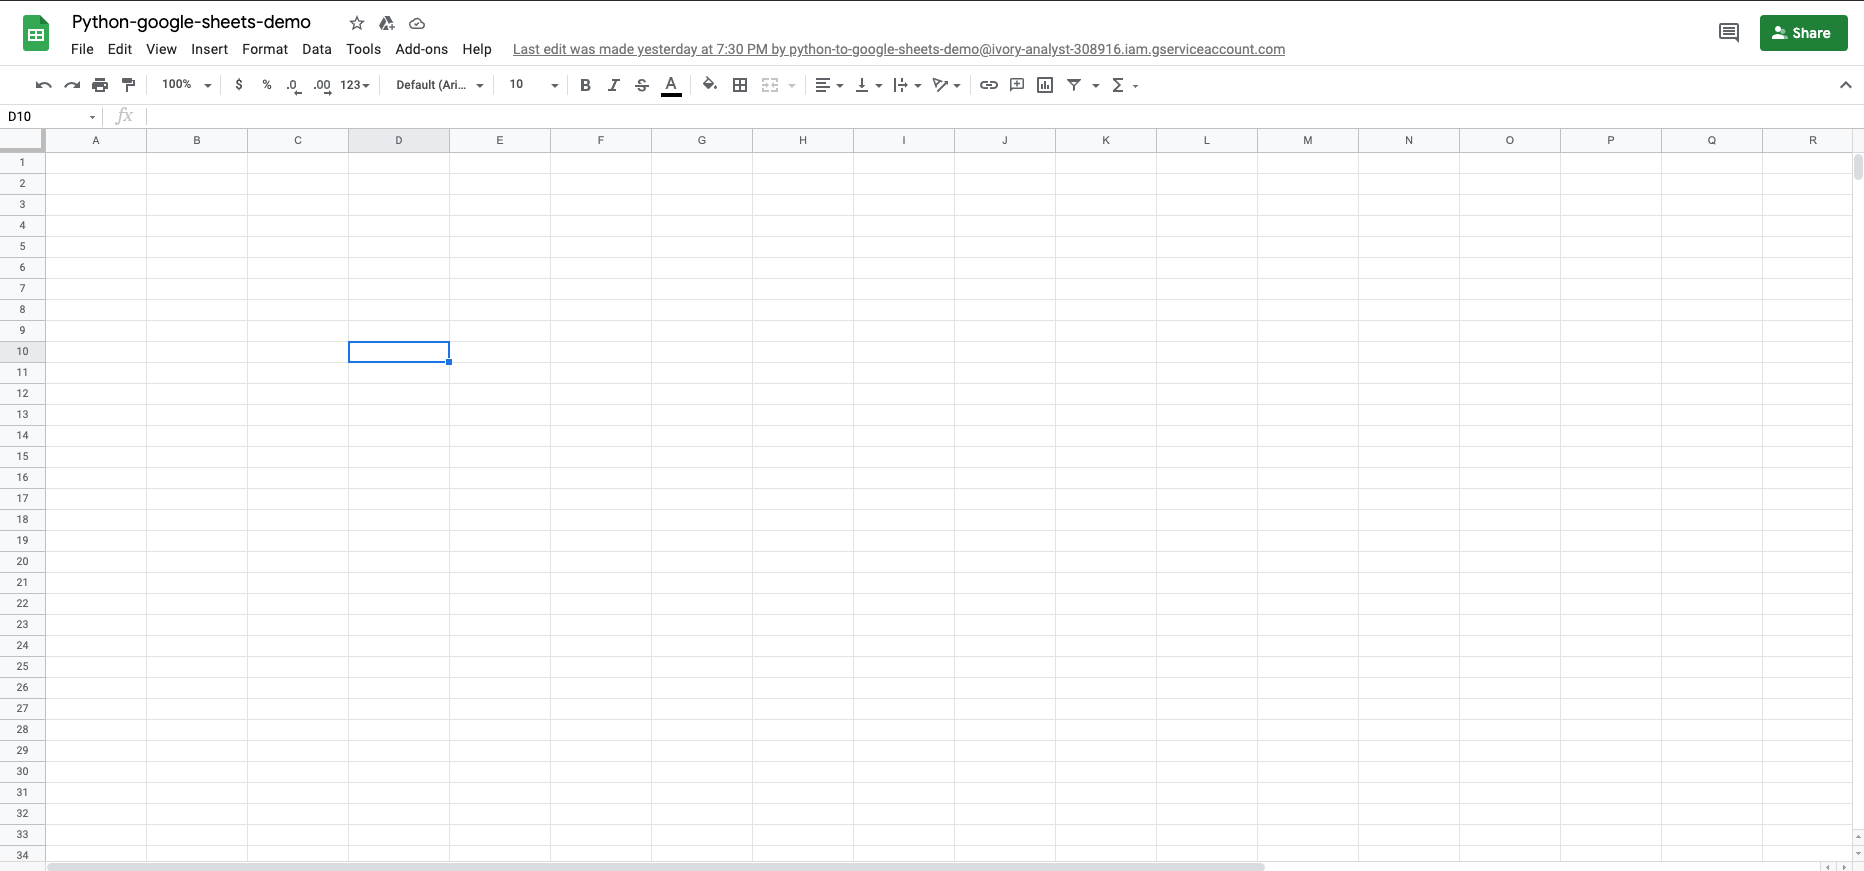 Google Sheets file created with Python